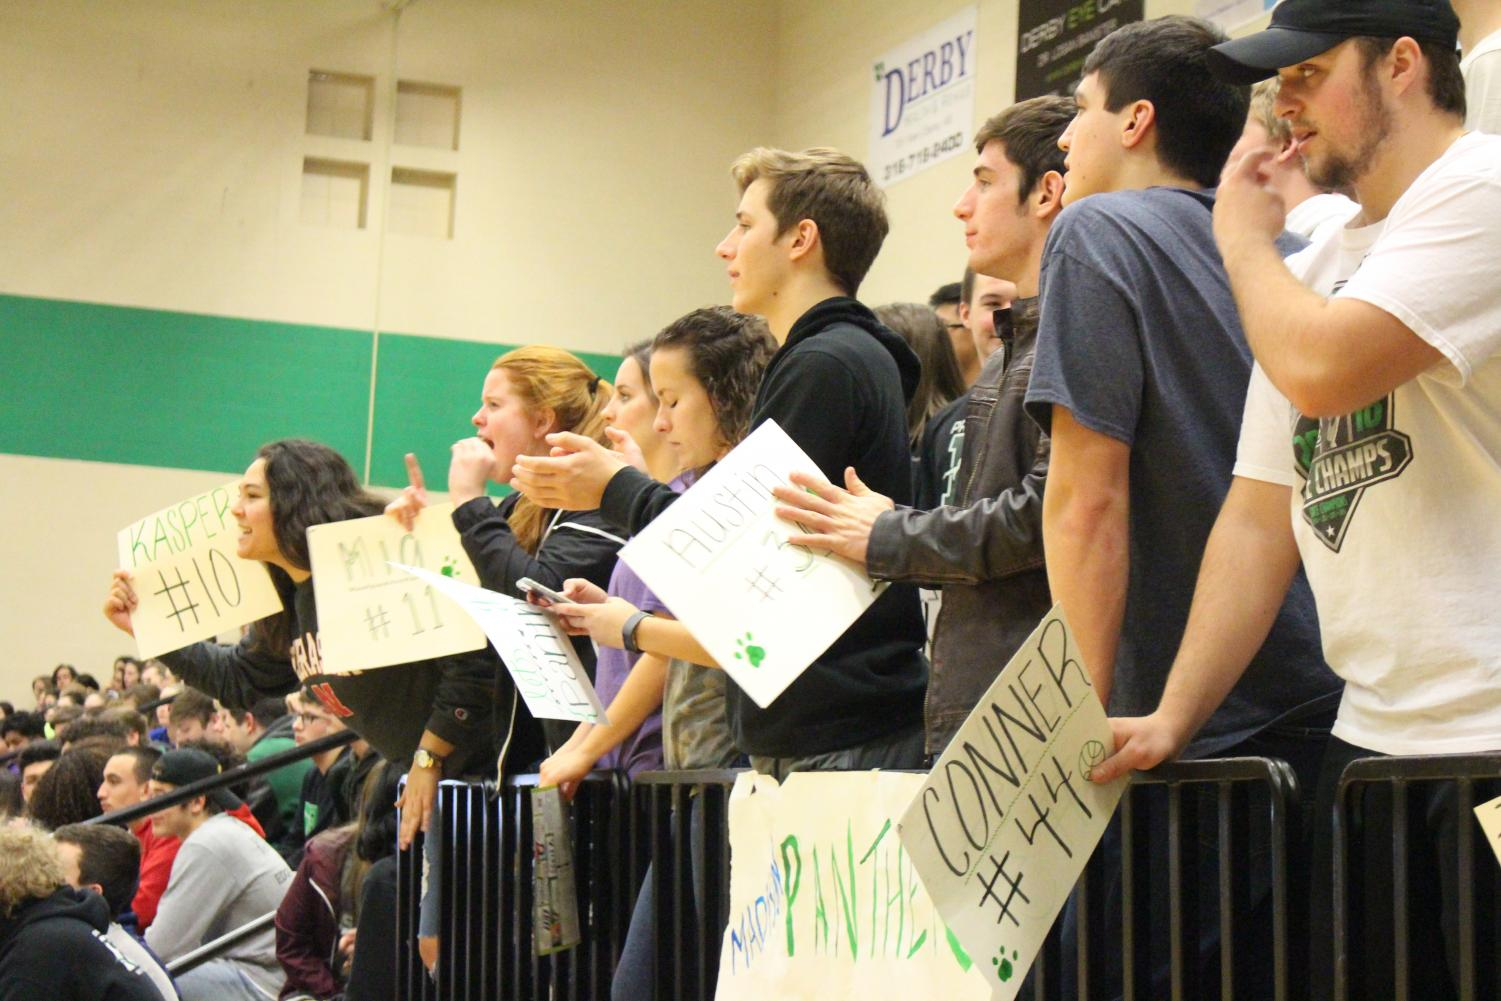 Seniors Regina Waugh and Promise Asher cheer along with the rest of the crowd, holding signs